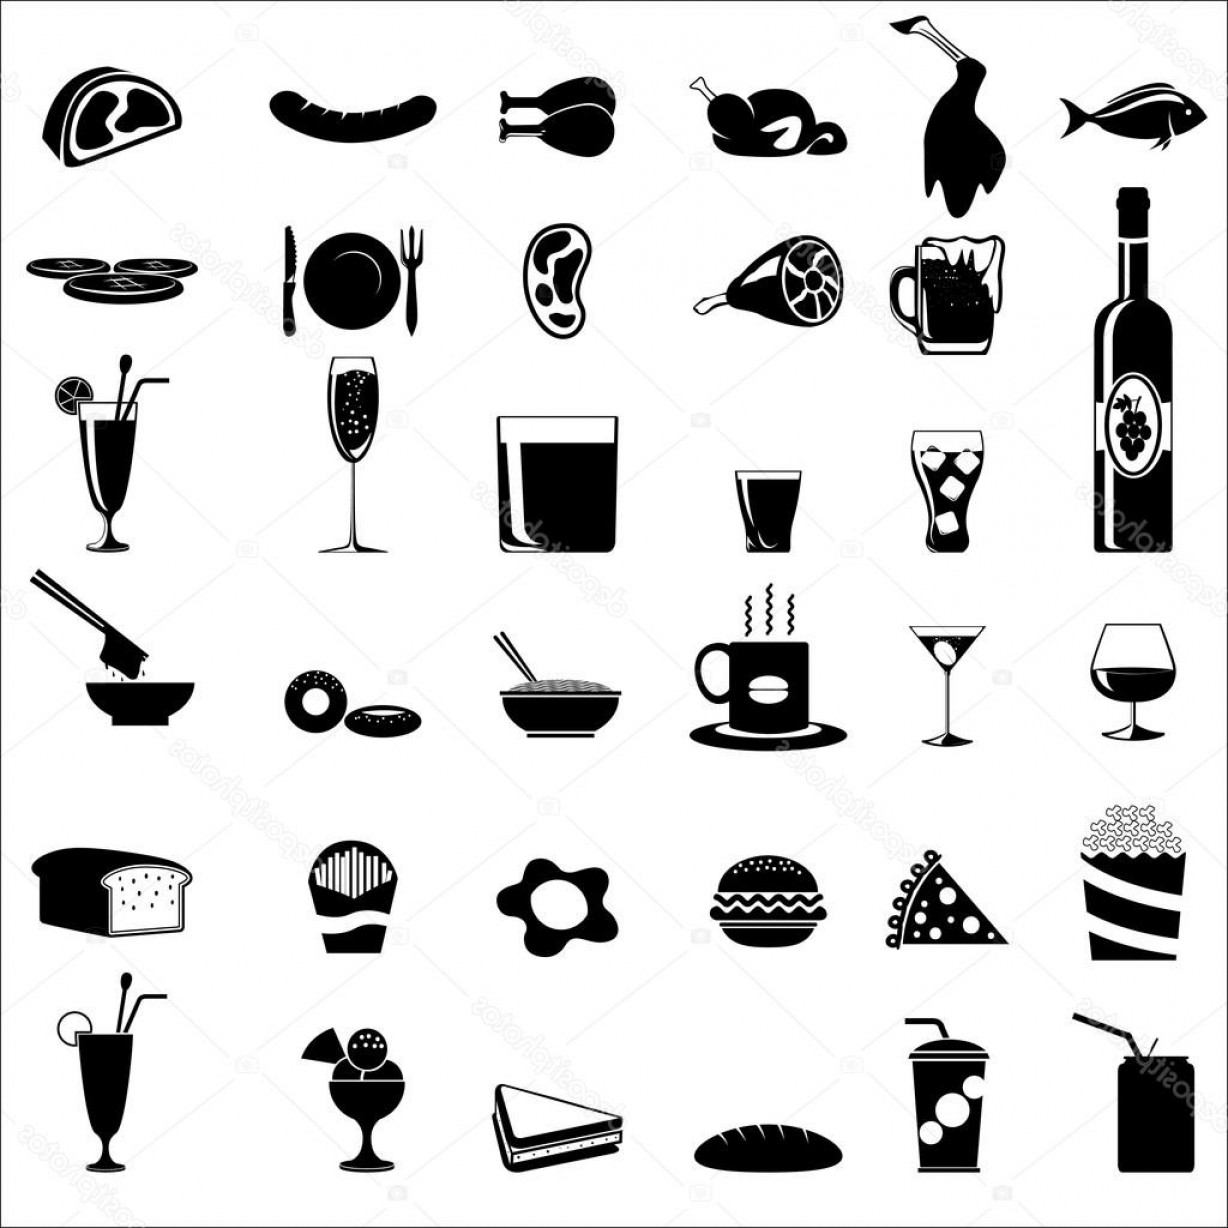 1228x1228 Stock Illustration Food And Beverage Icons Shopatcloth